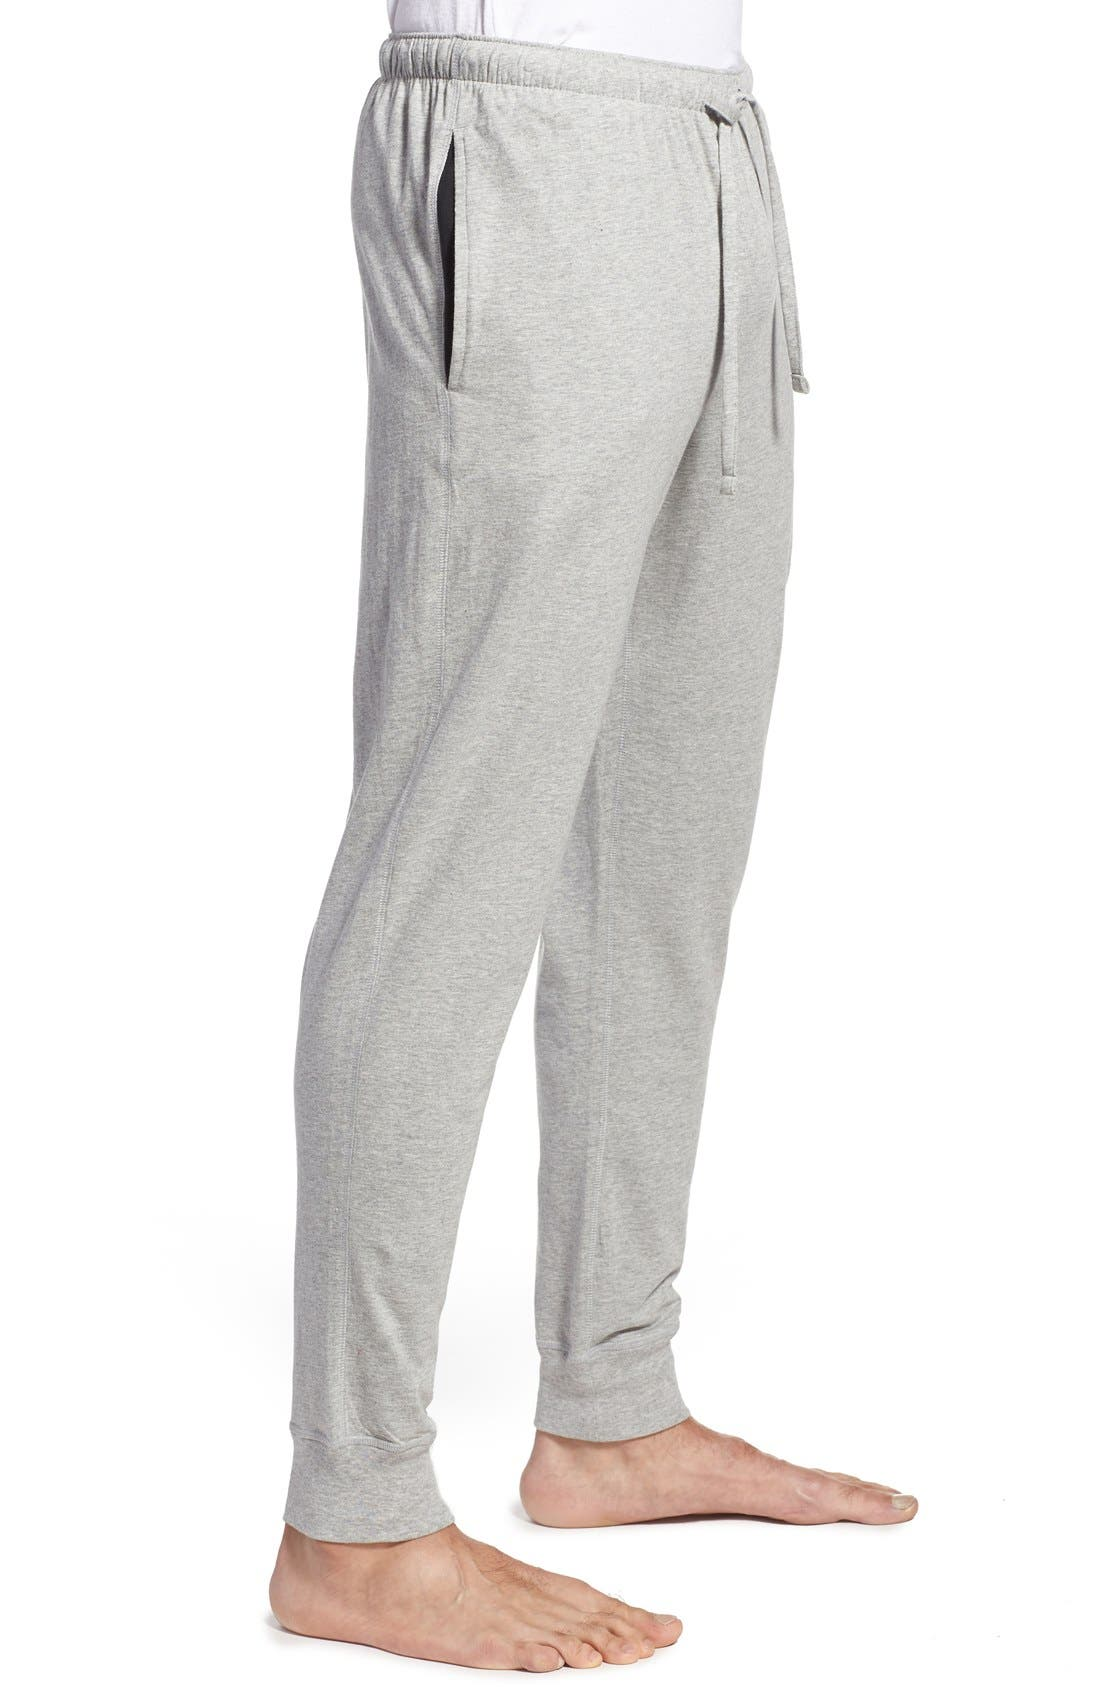 Relaxed Fit Jogger Pants,                             Alternate thumbnail 3, color,                             Andover Heather